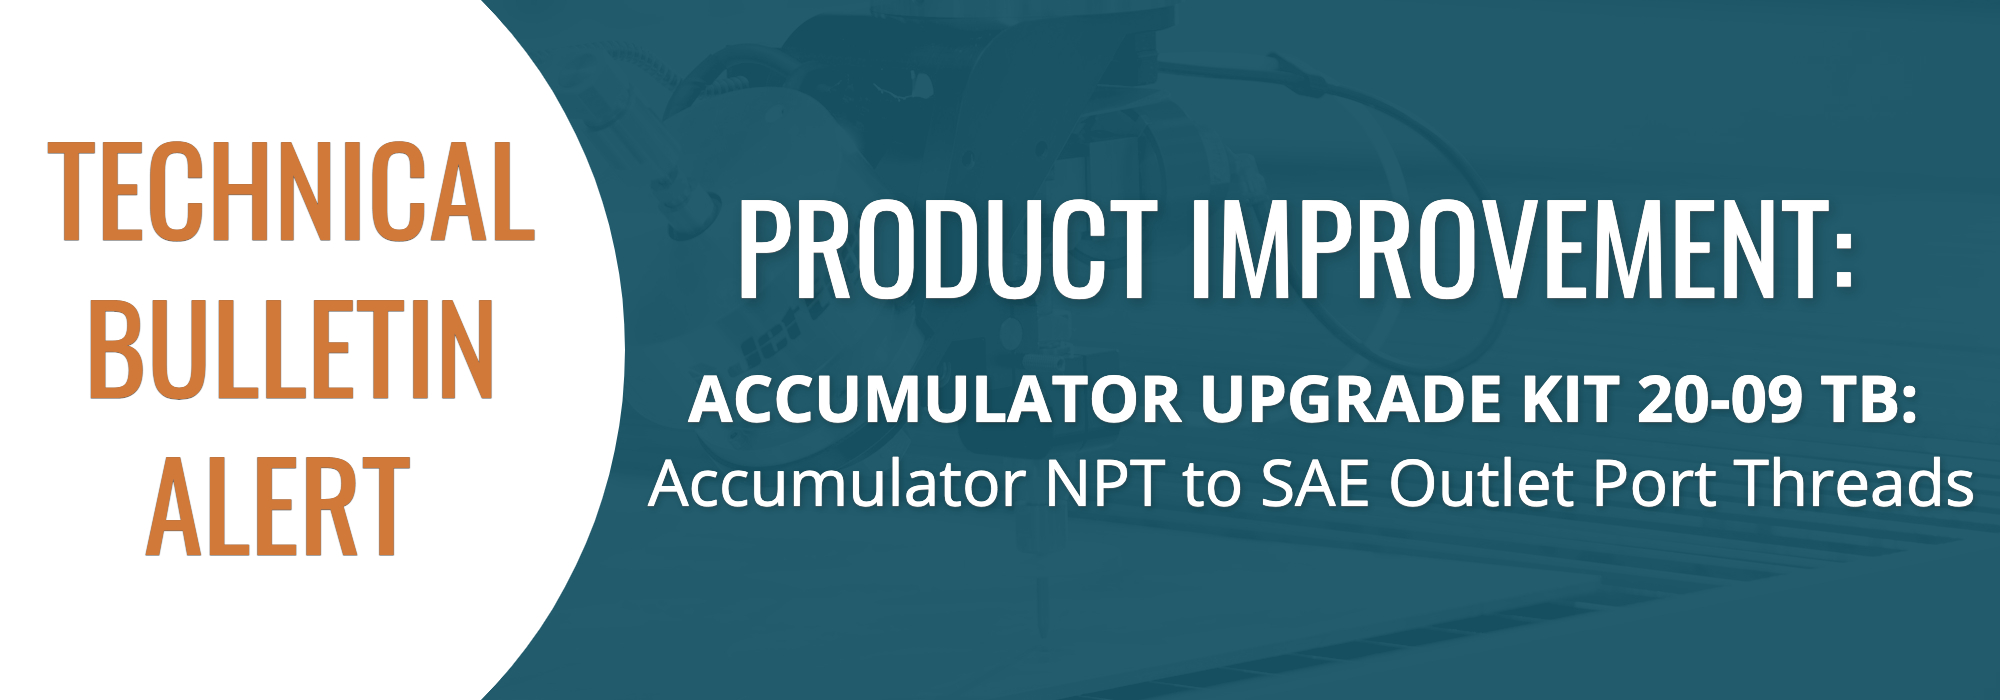 Technical Bulletin - Accumulator Upgrade Kits